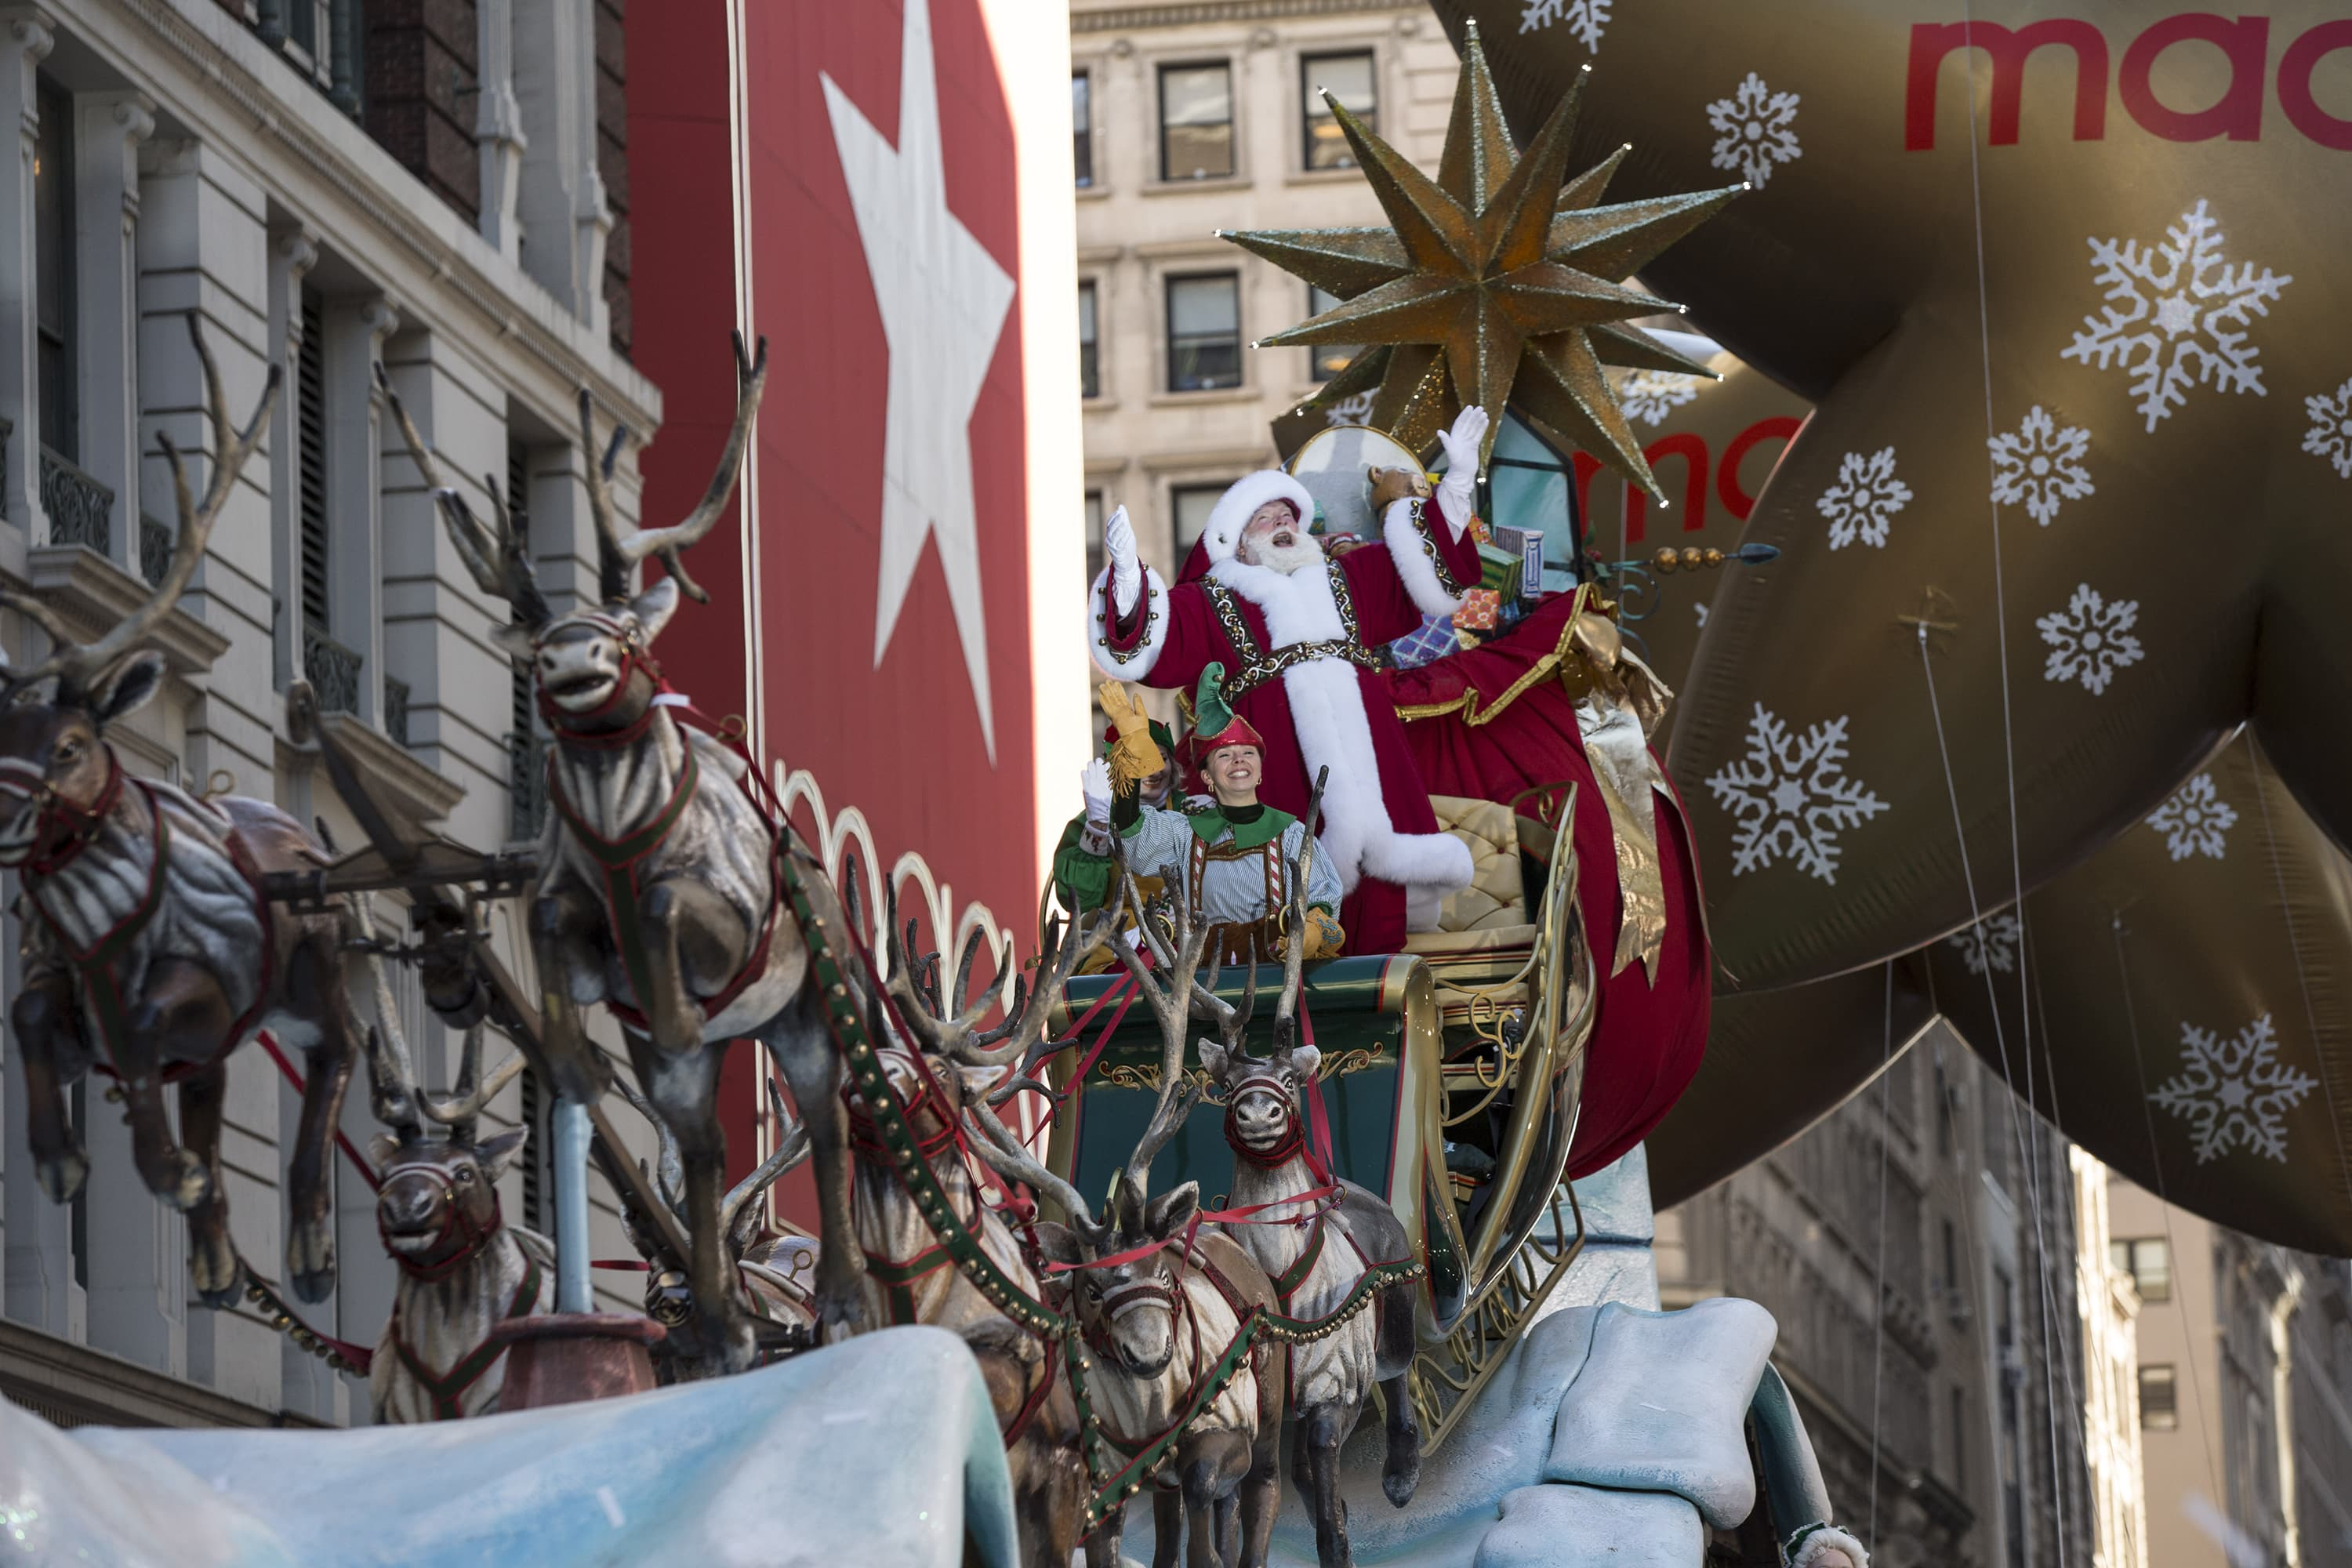 5613a5c66 The holiday season gives Macy's the chance to prove its turnaround plan is  working